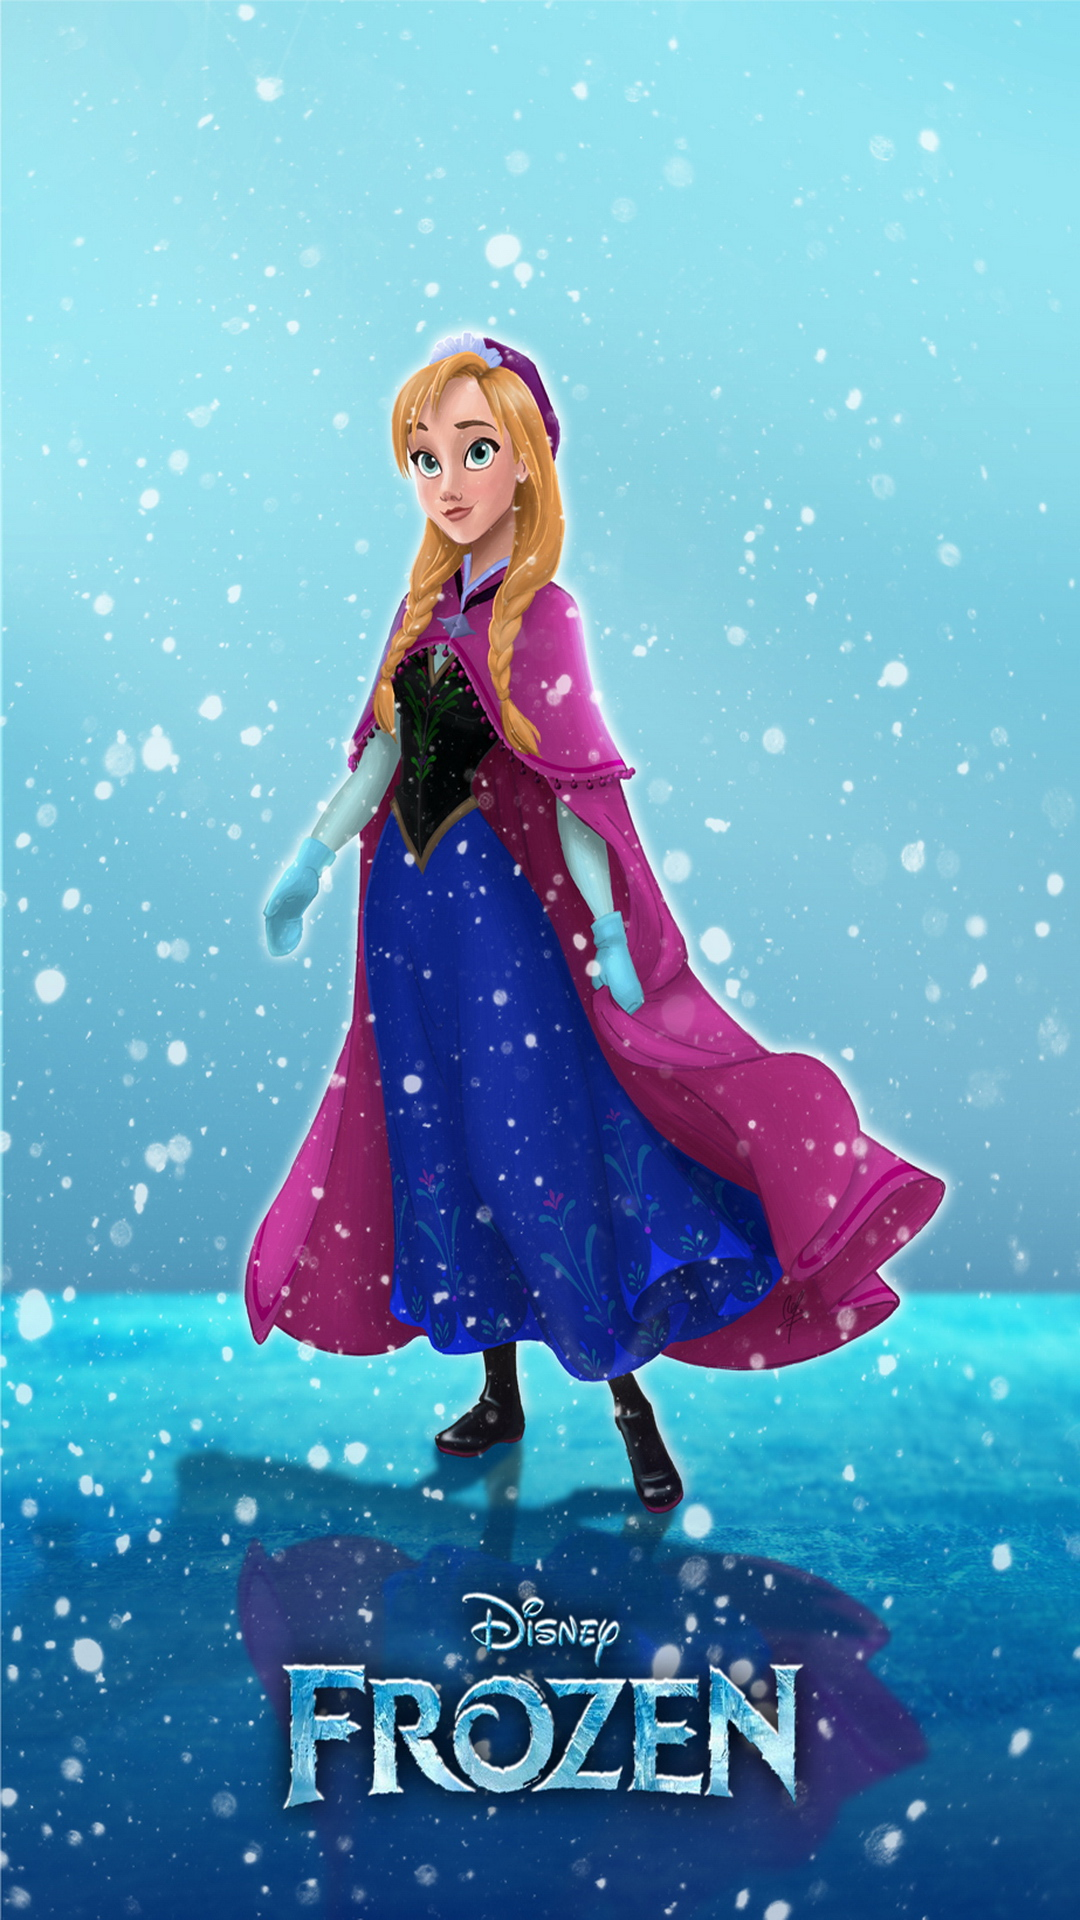 hd disney frozen wallpapers for mobile phone 1080x1920 1080x1920